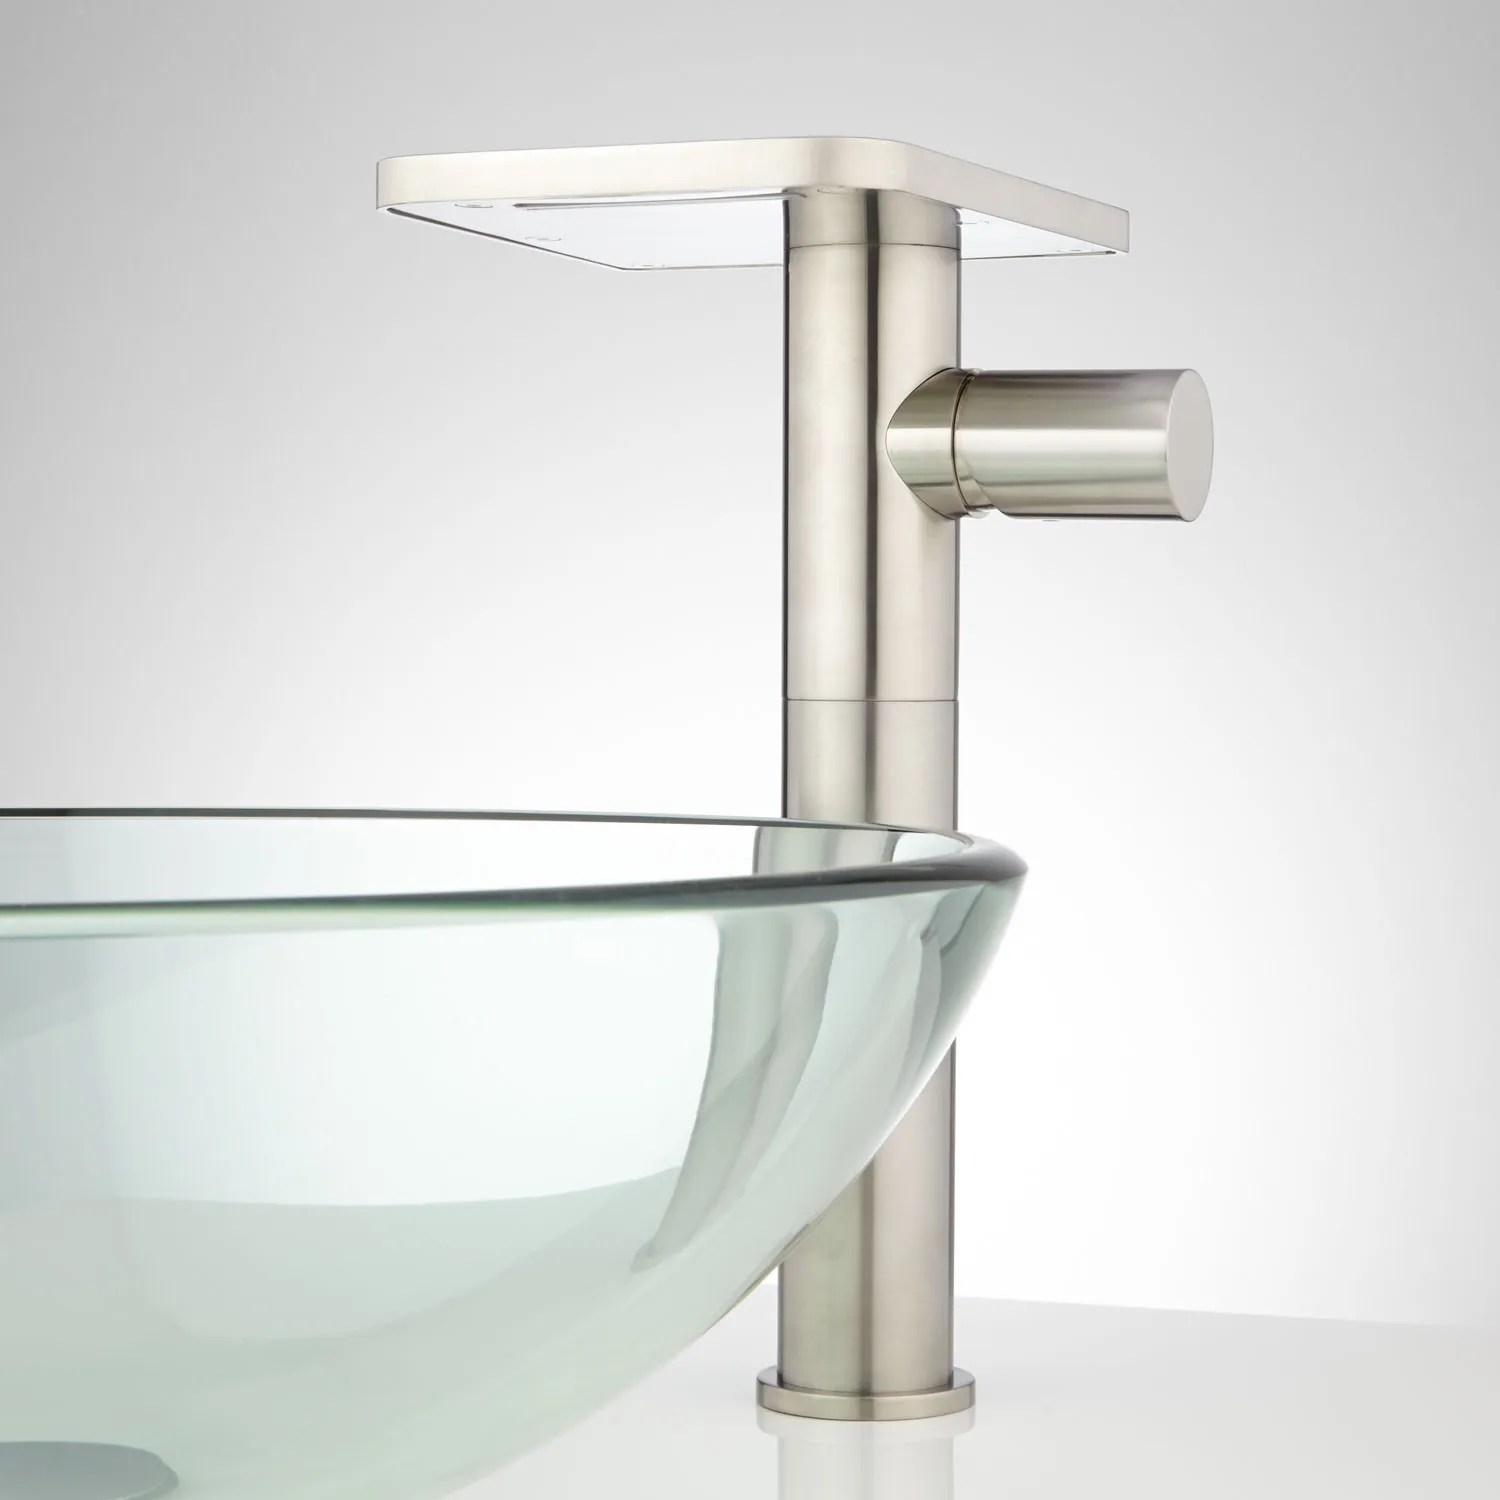 brushed nickel kitchen hardware little bakers knox waterfall vessel faucet with pop-up drain - bathroom